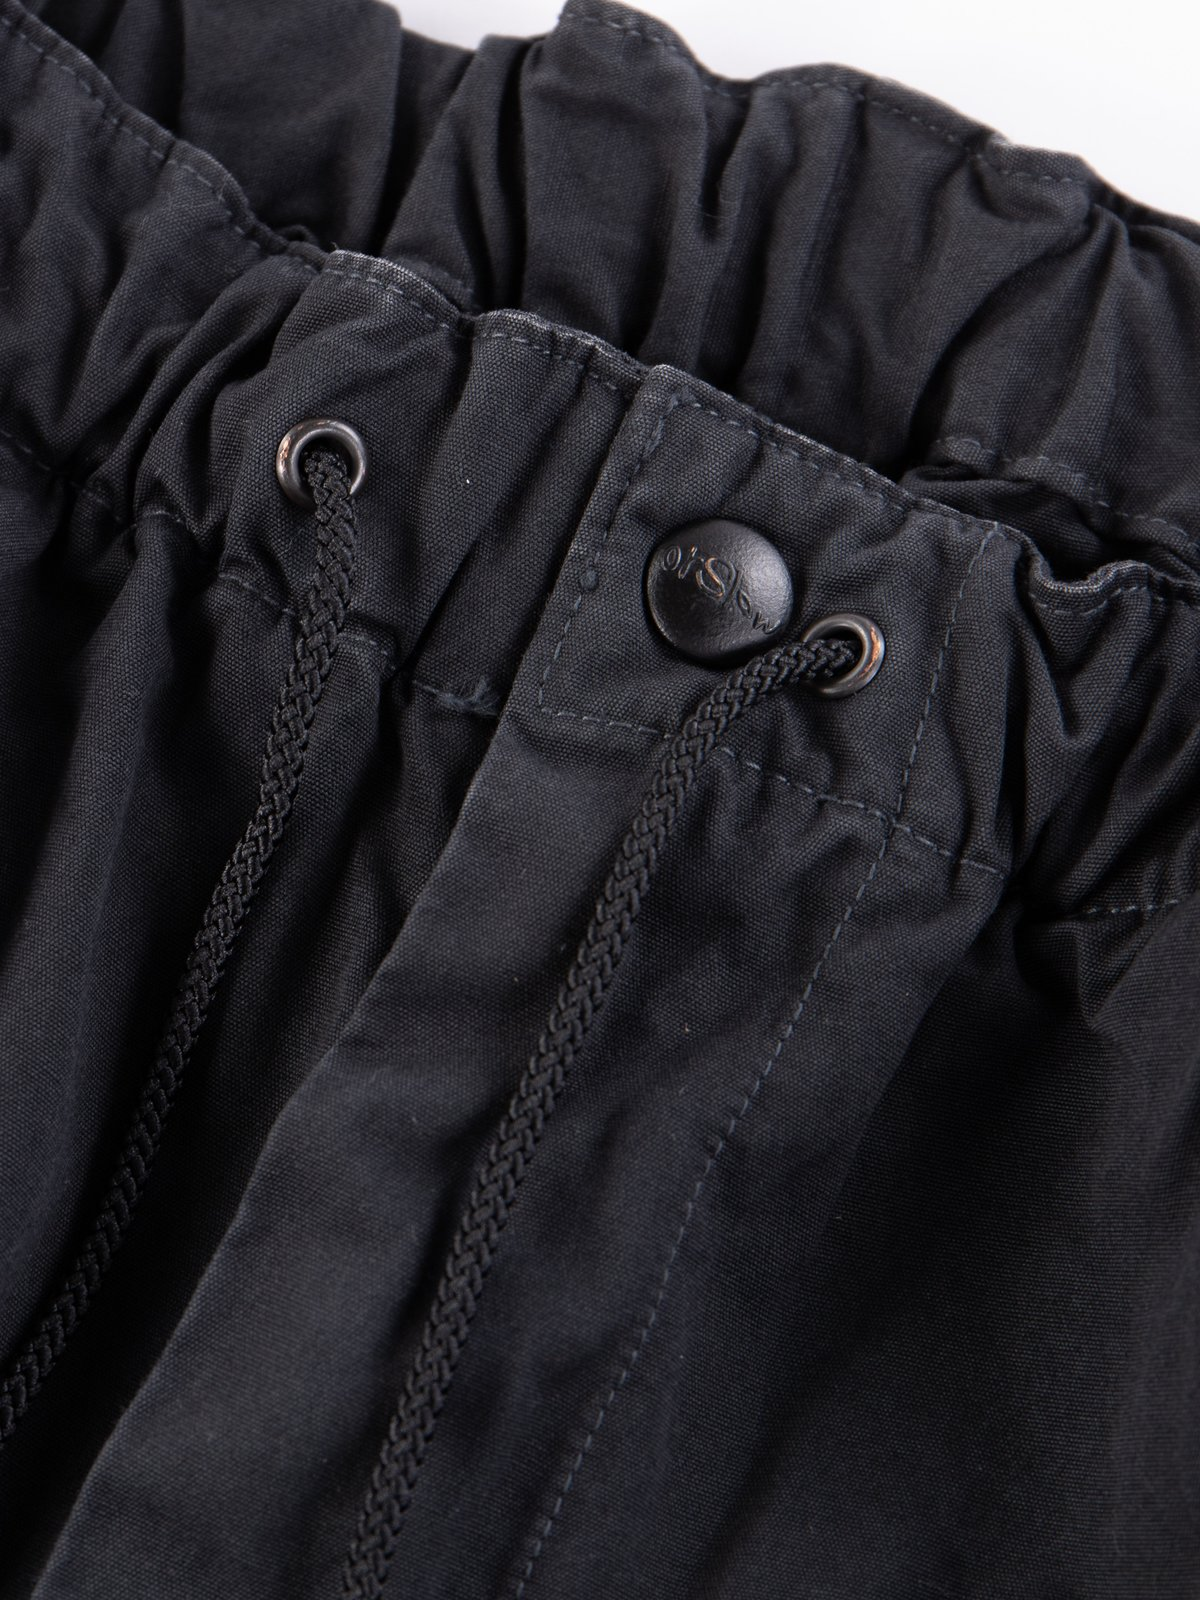 Grey Weather Cloth Easy Cargo Pant - Image 7